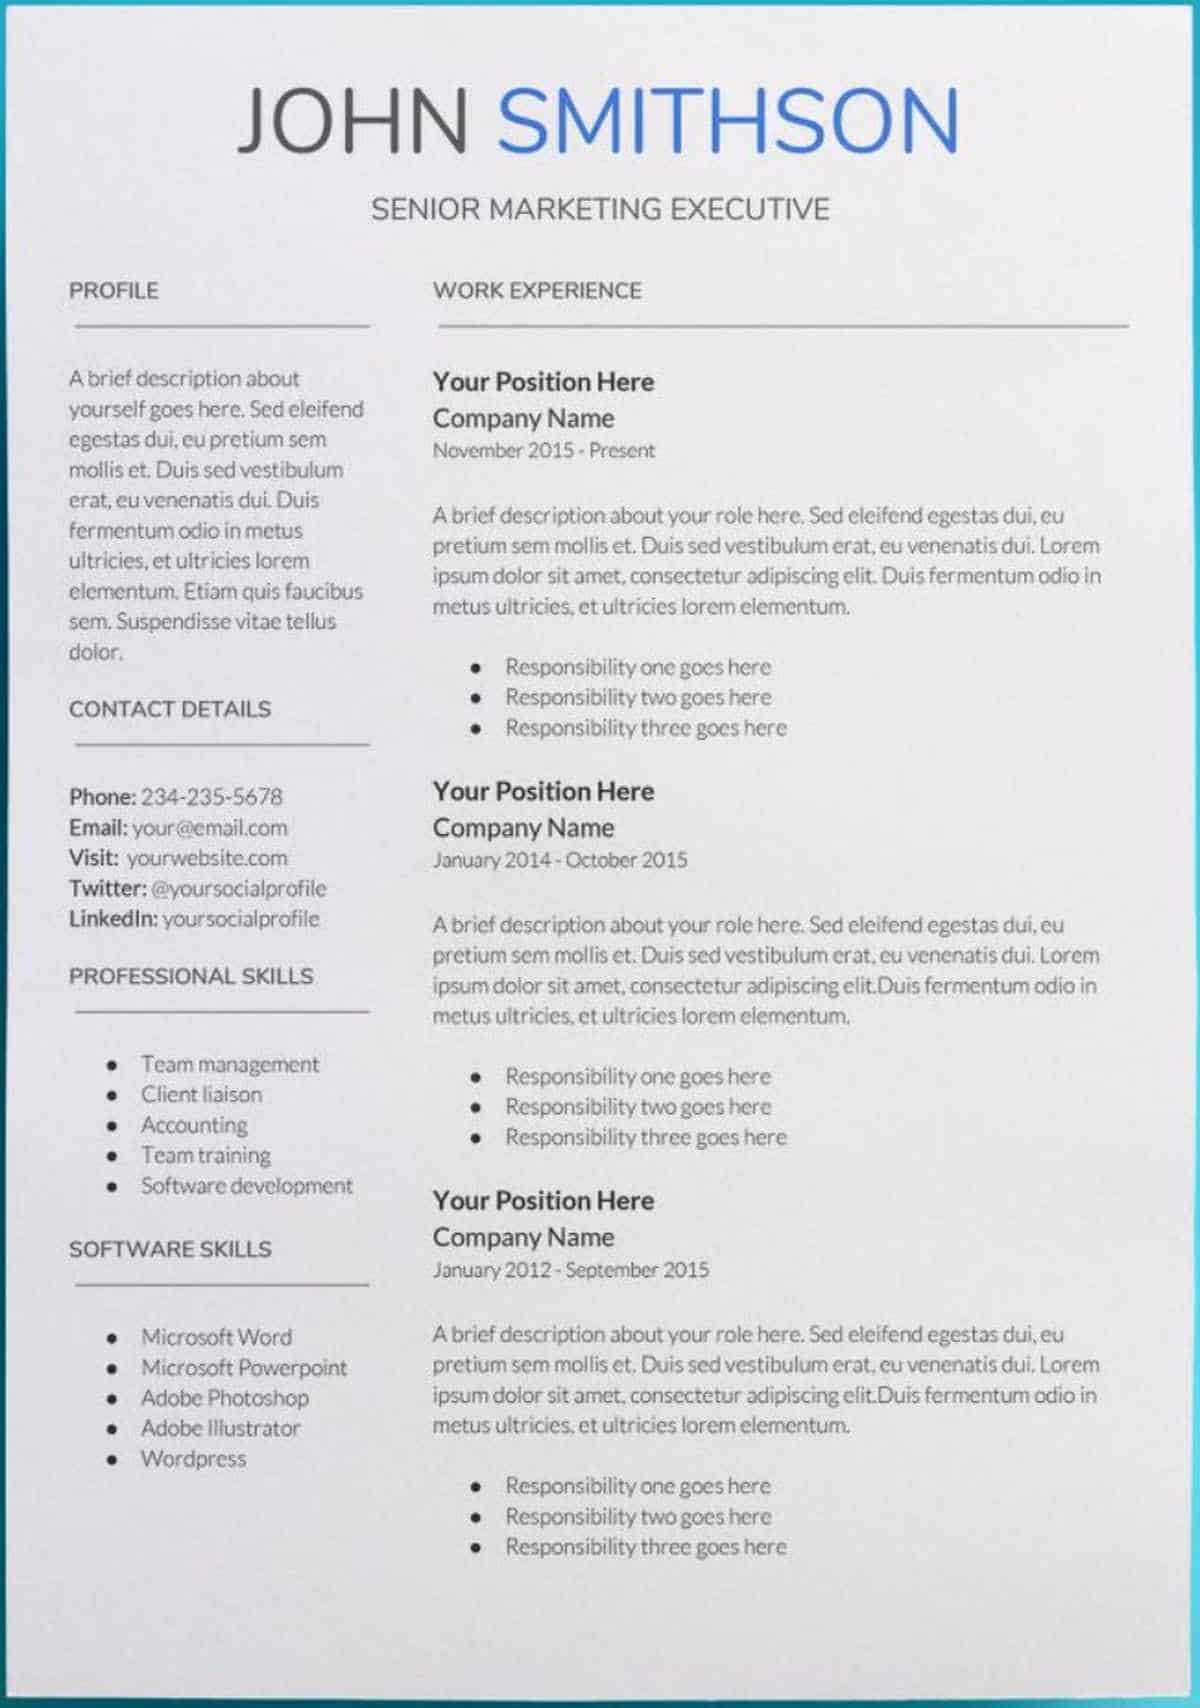 Job Description Template Google Docs Fresh 30 Google Docs Resume Templates [downloadable Pdfs]